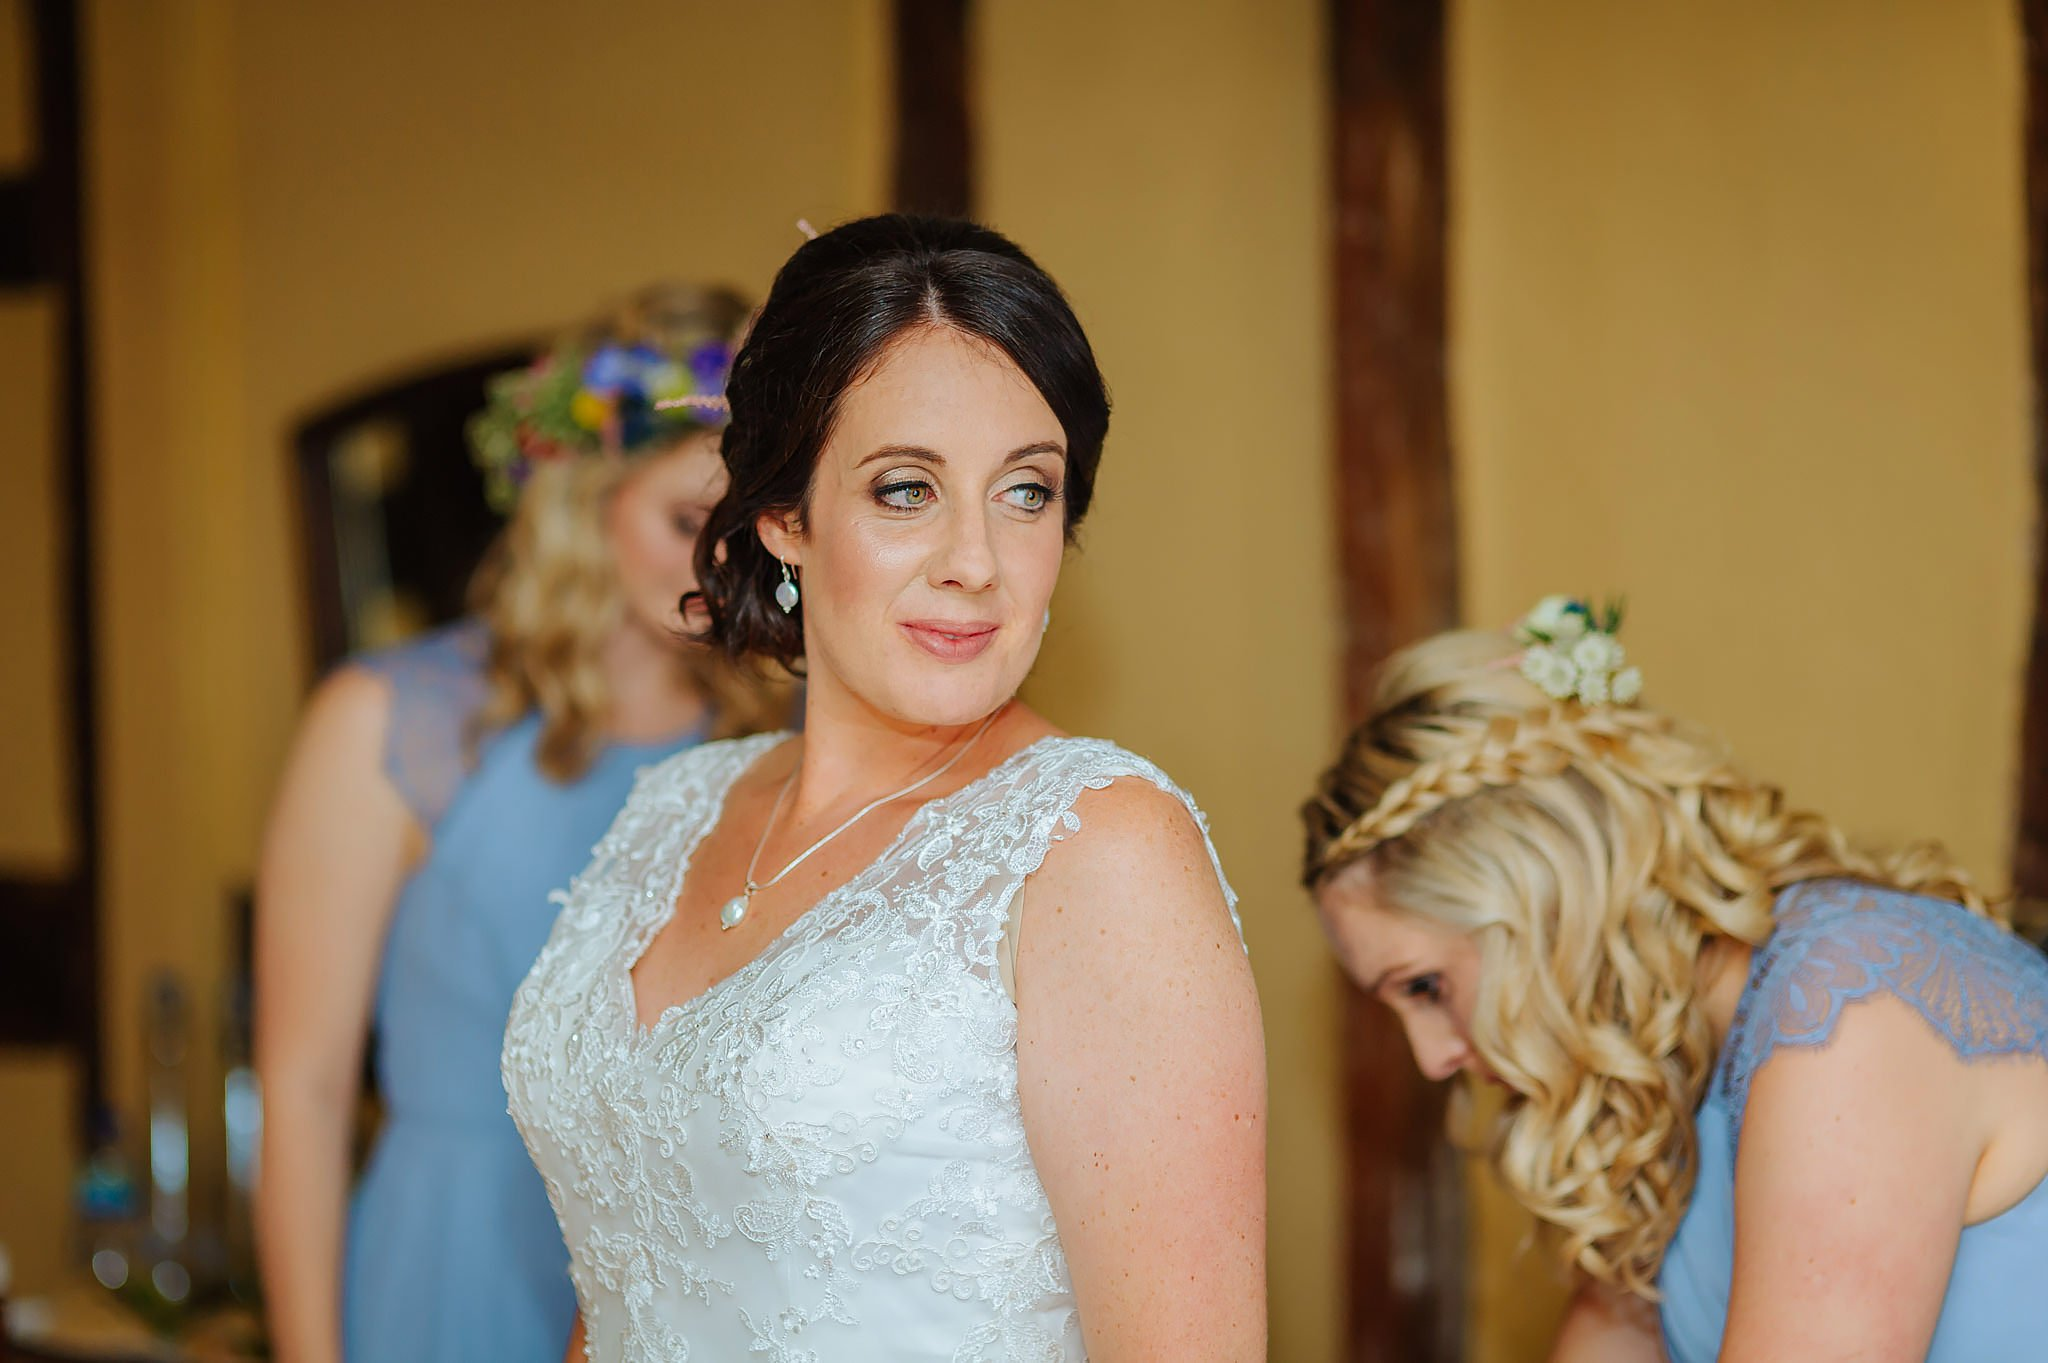 Wedding photography at Hellens Manor in Herefordshire, West Midlands | Shelley + Ian 9